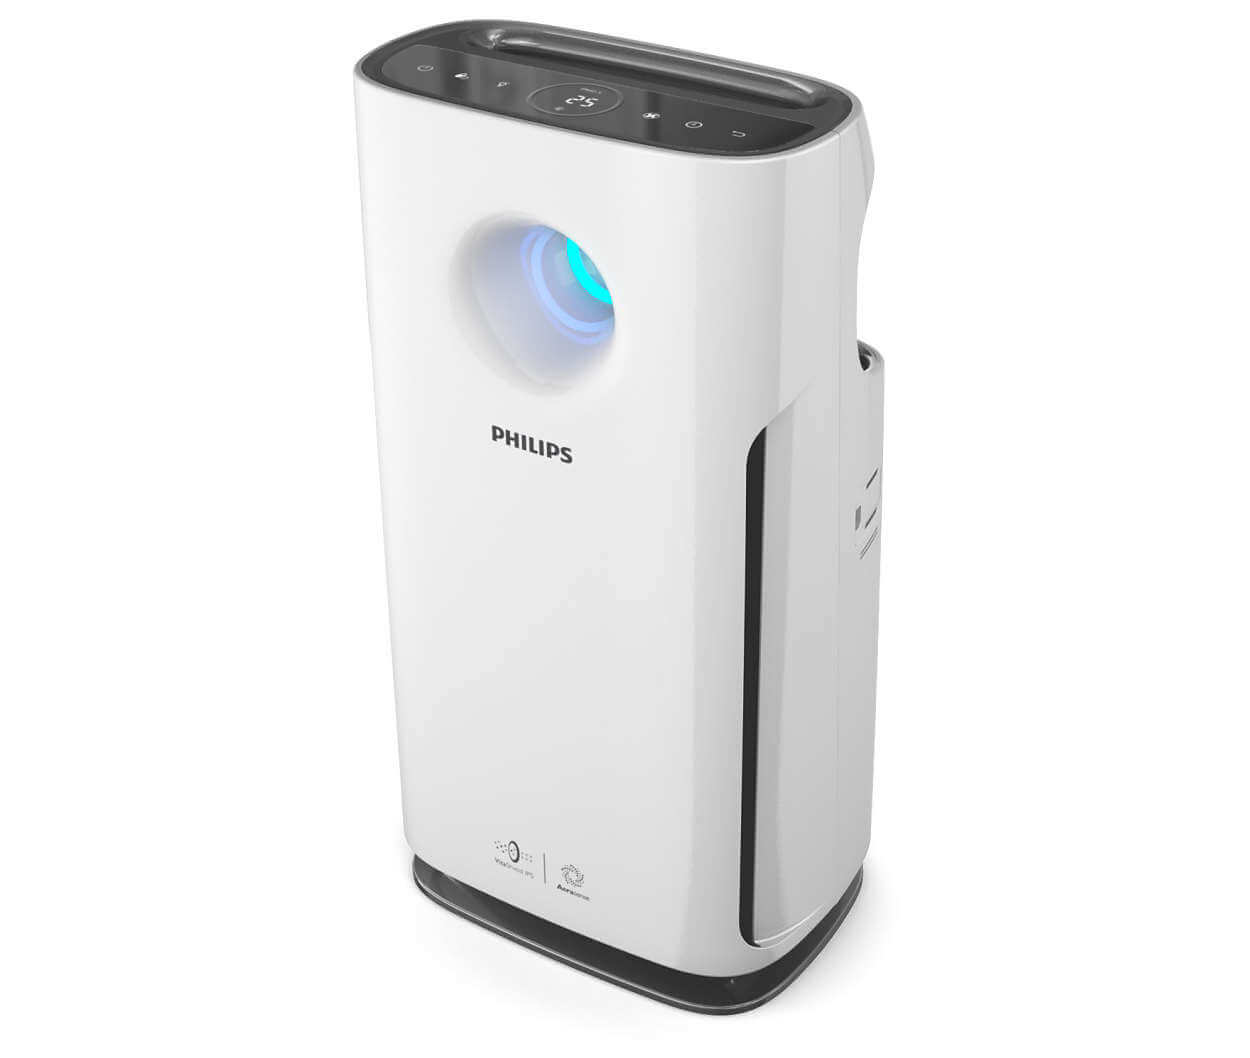 Philips AC3256 Air purifier Review full